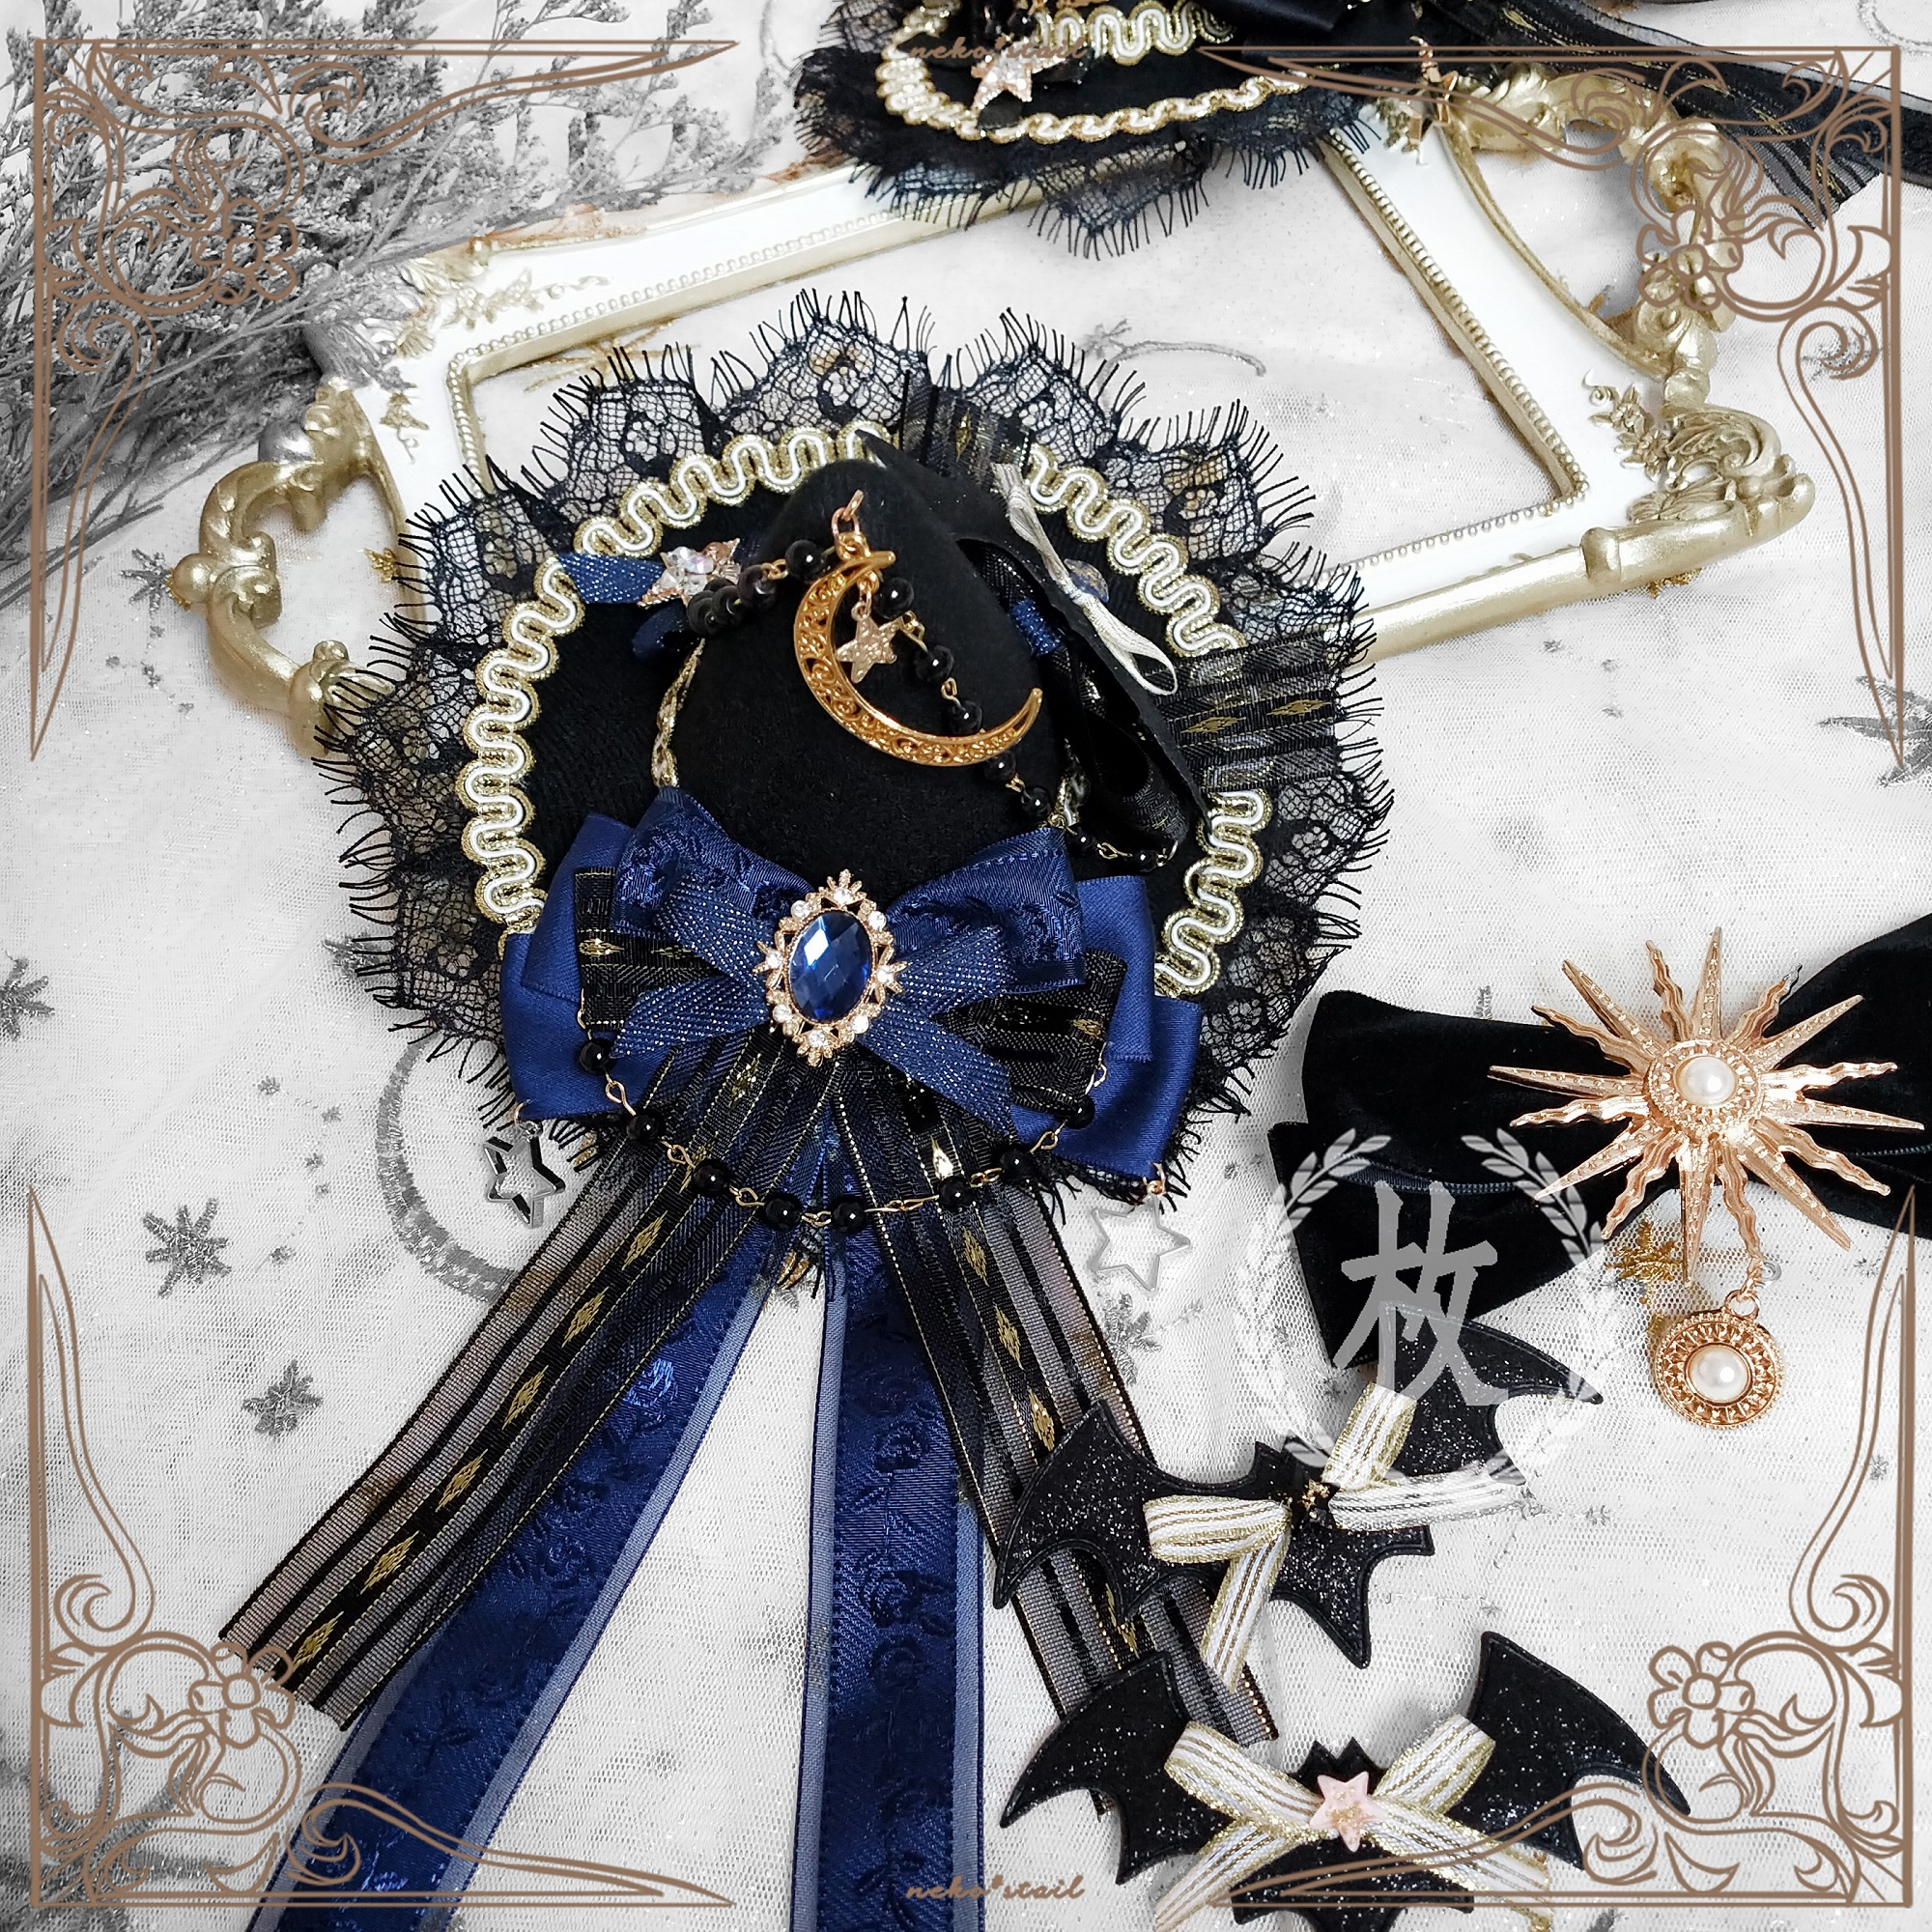 Fantasy Halloween Hair Horn Pearl beads Vintage Coffee Bezel Rim Hairstyle Princess Cute Uniqie Headpiece Wizard outfit Gothic witch Costume